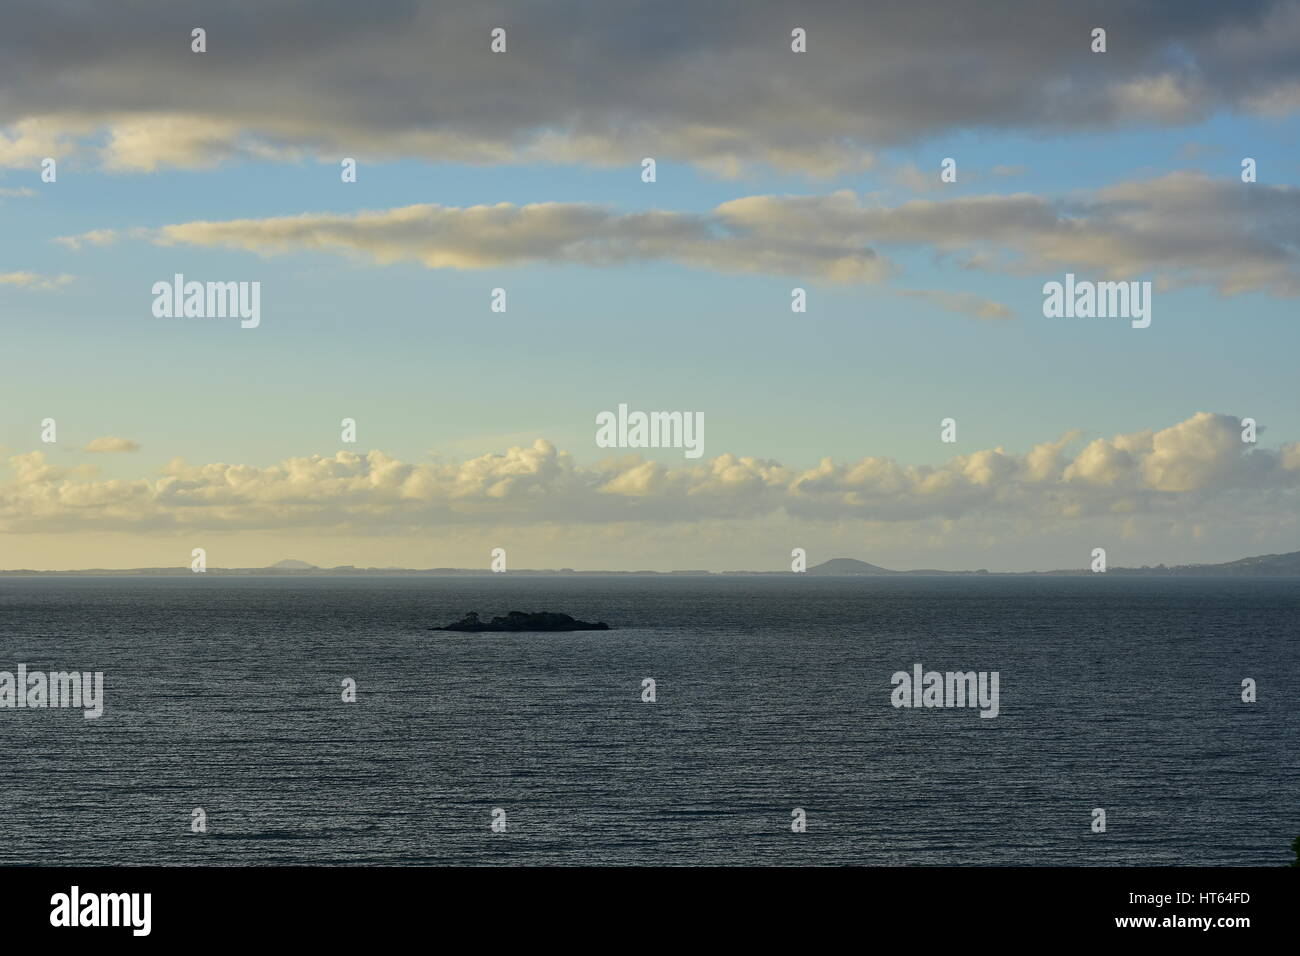 Dark steel-like gray sea with small almost black rock just above water surface under bright sky with some dark cloudy - Stock Image